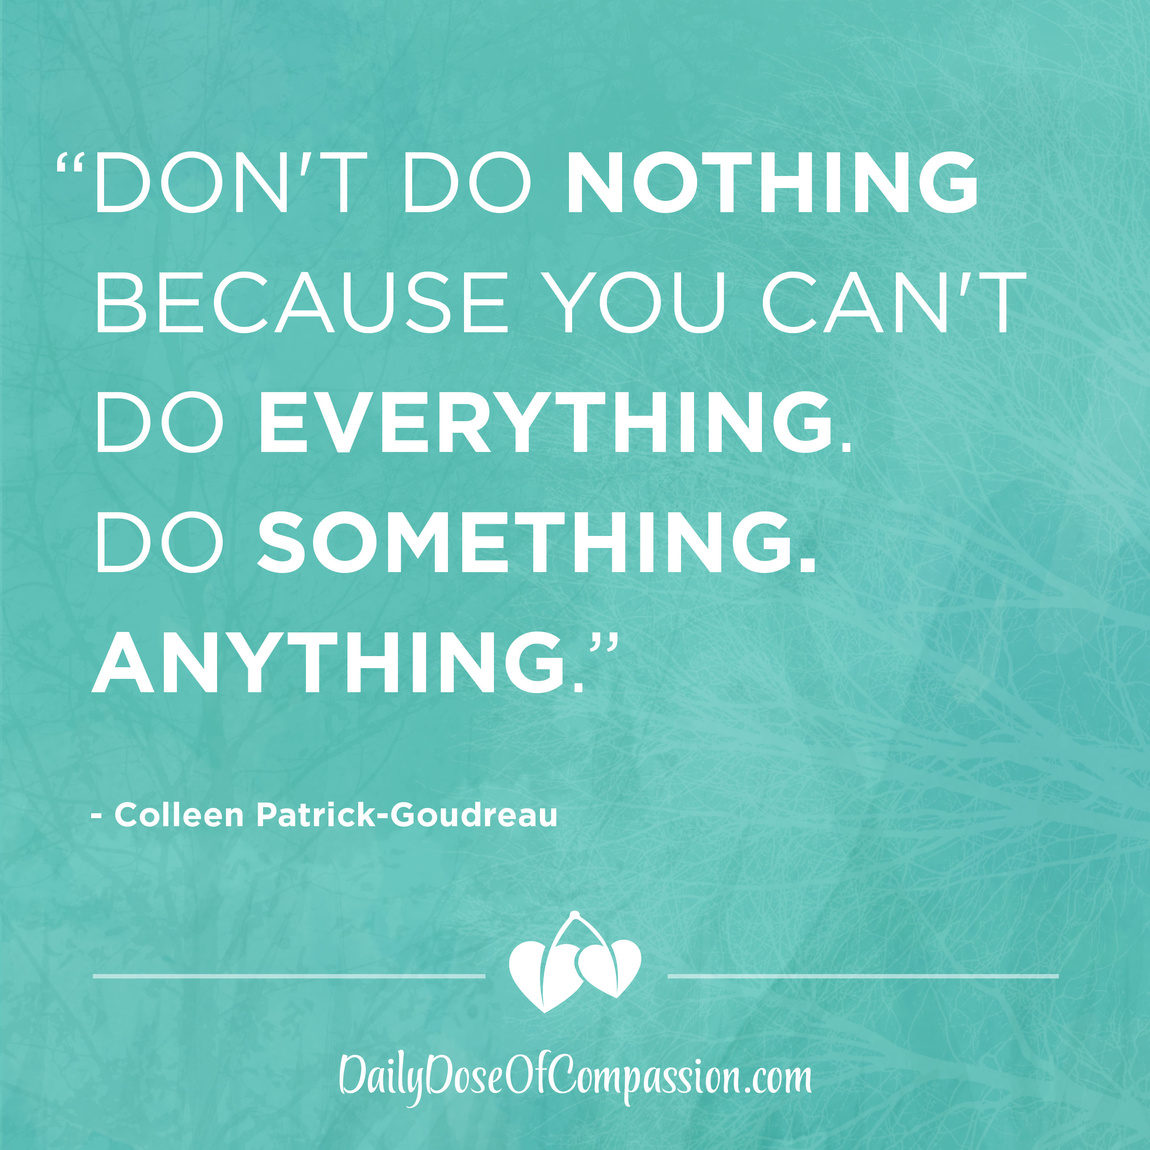 Dont-Do-Nothing-Because-You-Cant-Do-Everything-Colleen-Patrick-Goudreau.jpg